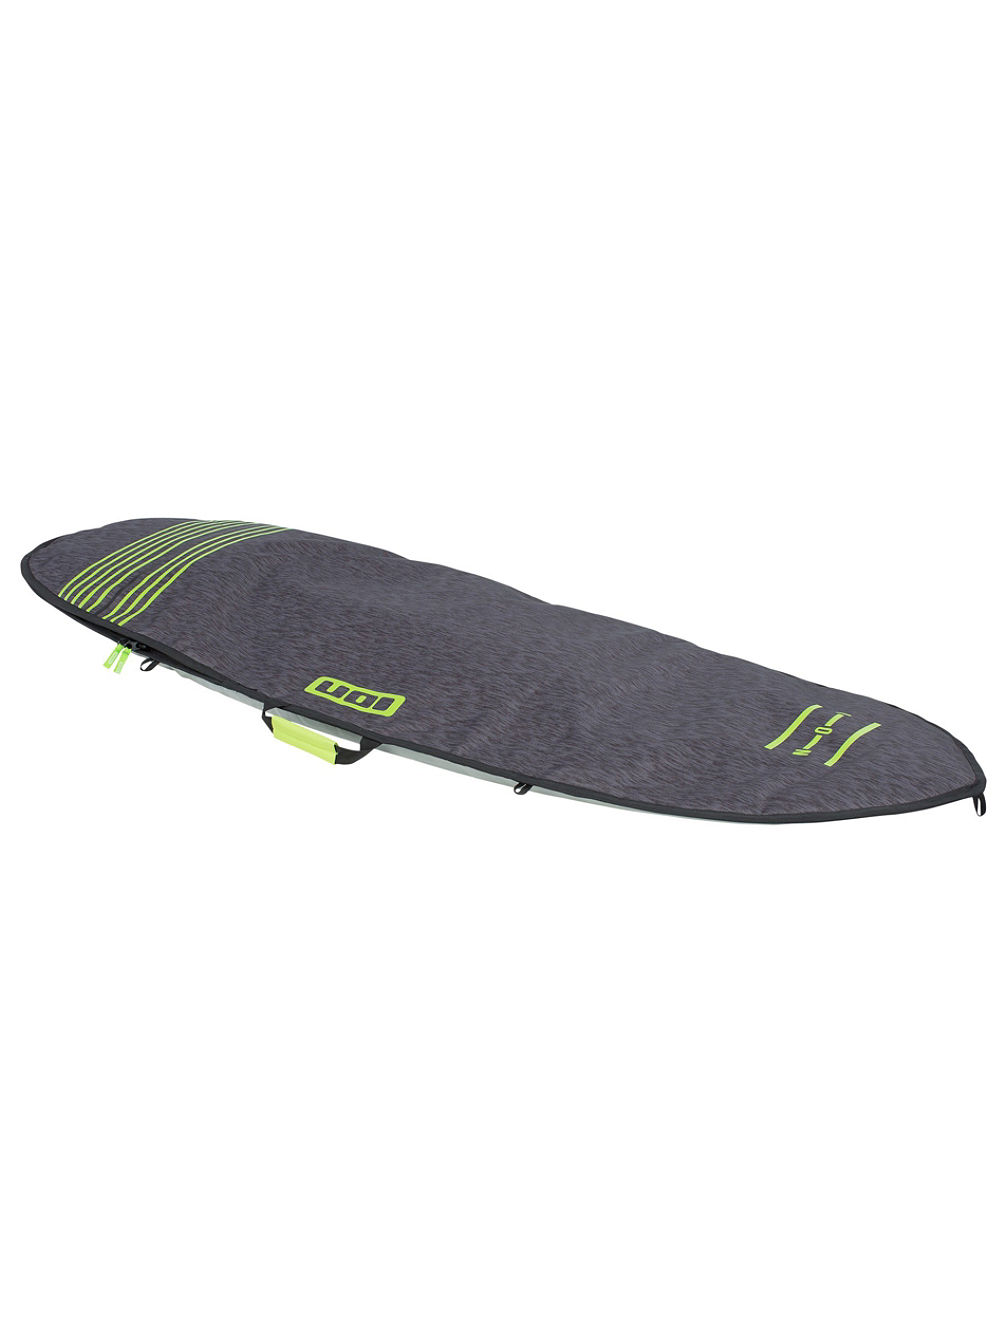 Surf Core 5'8 Surfboard Bag